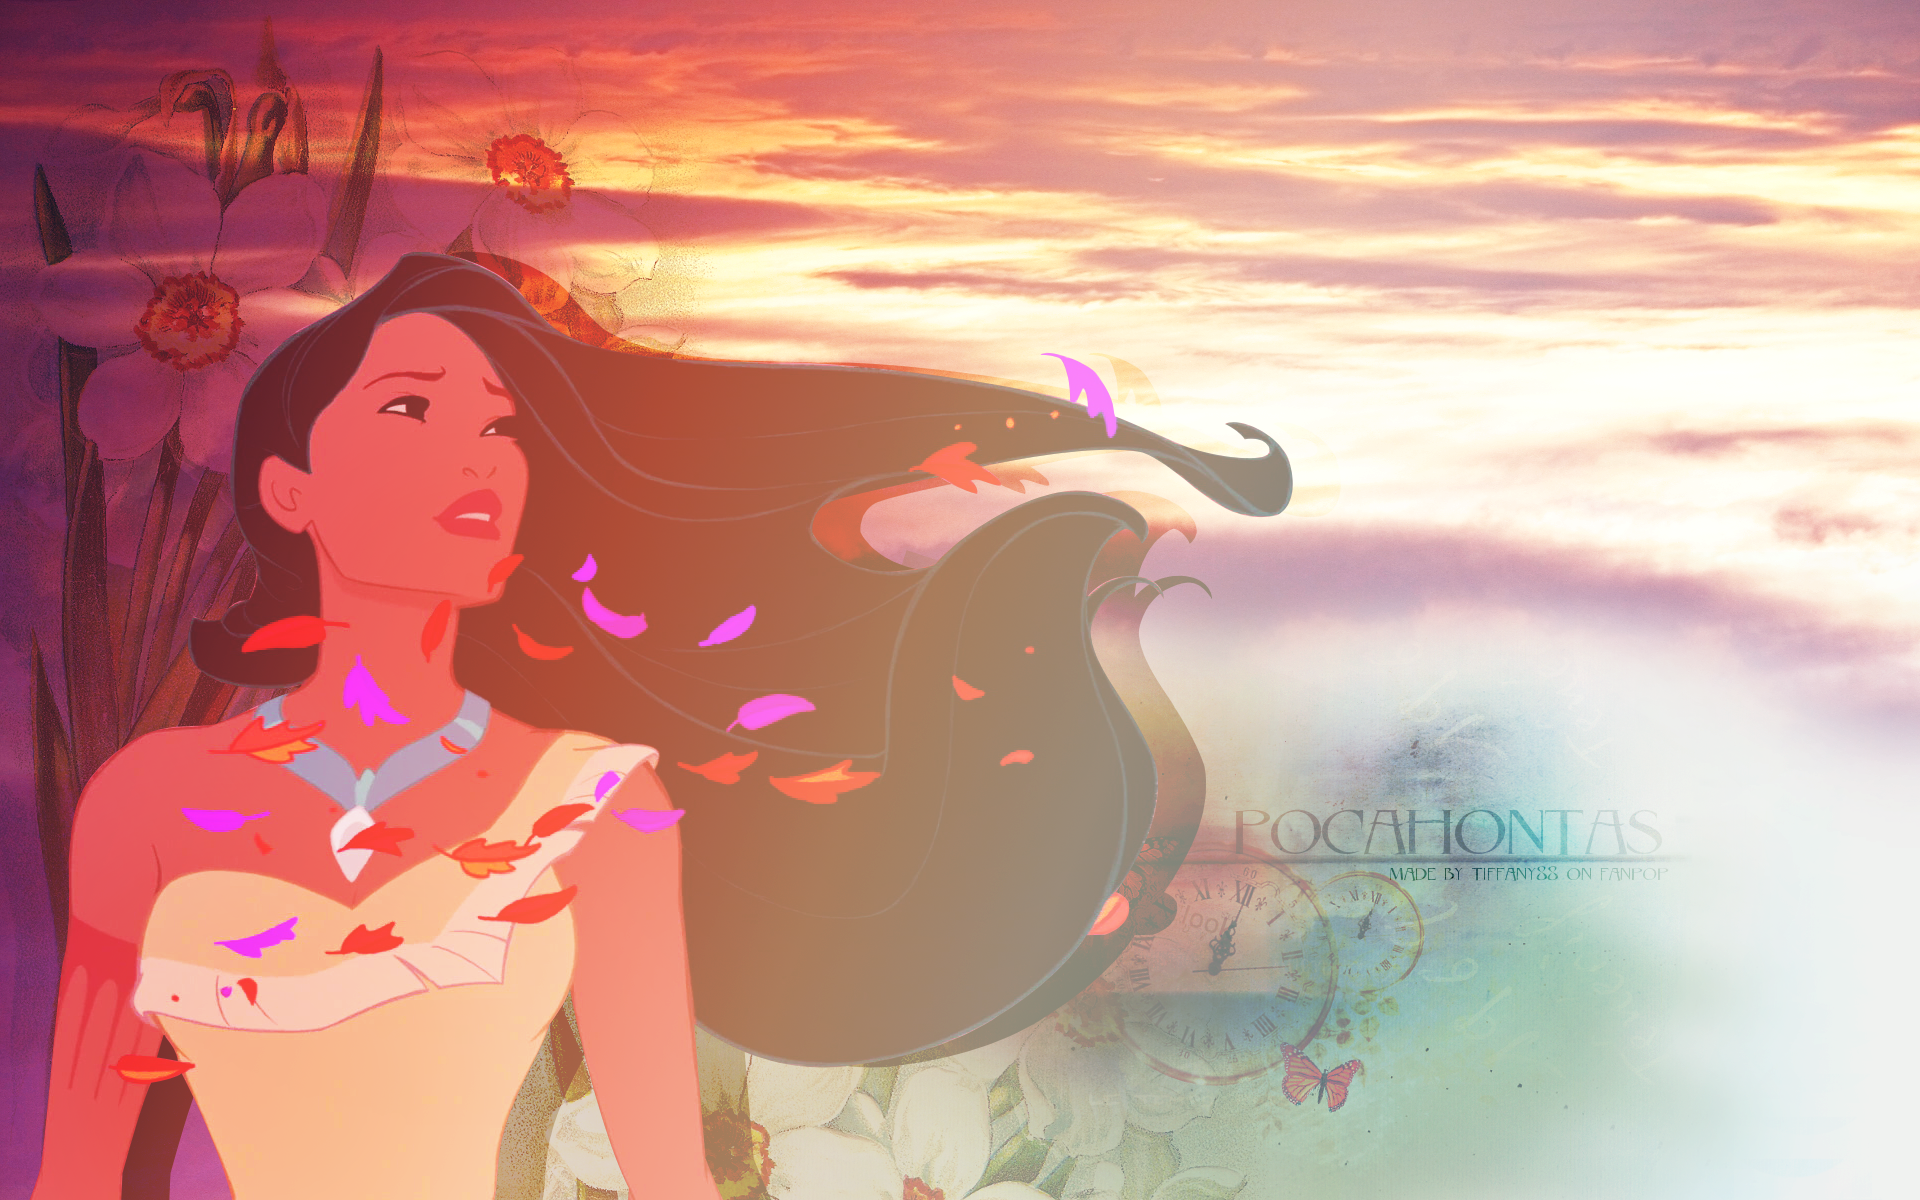 HD Wallpaper And Background Photos Of Pocahontas For Fans Of Disney  Princess Images. - Pocahontas PNG HD